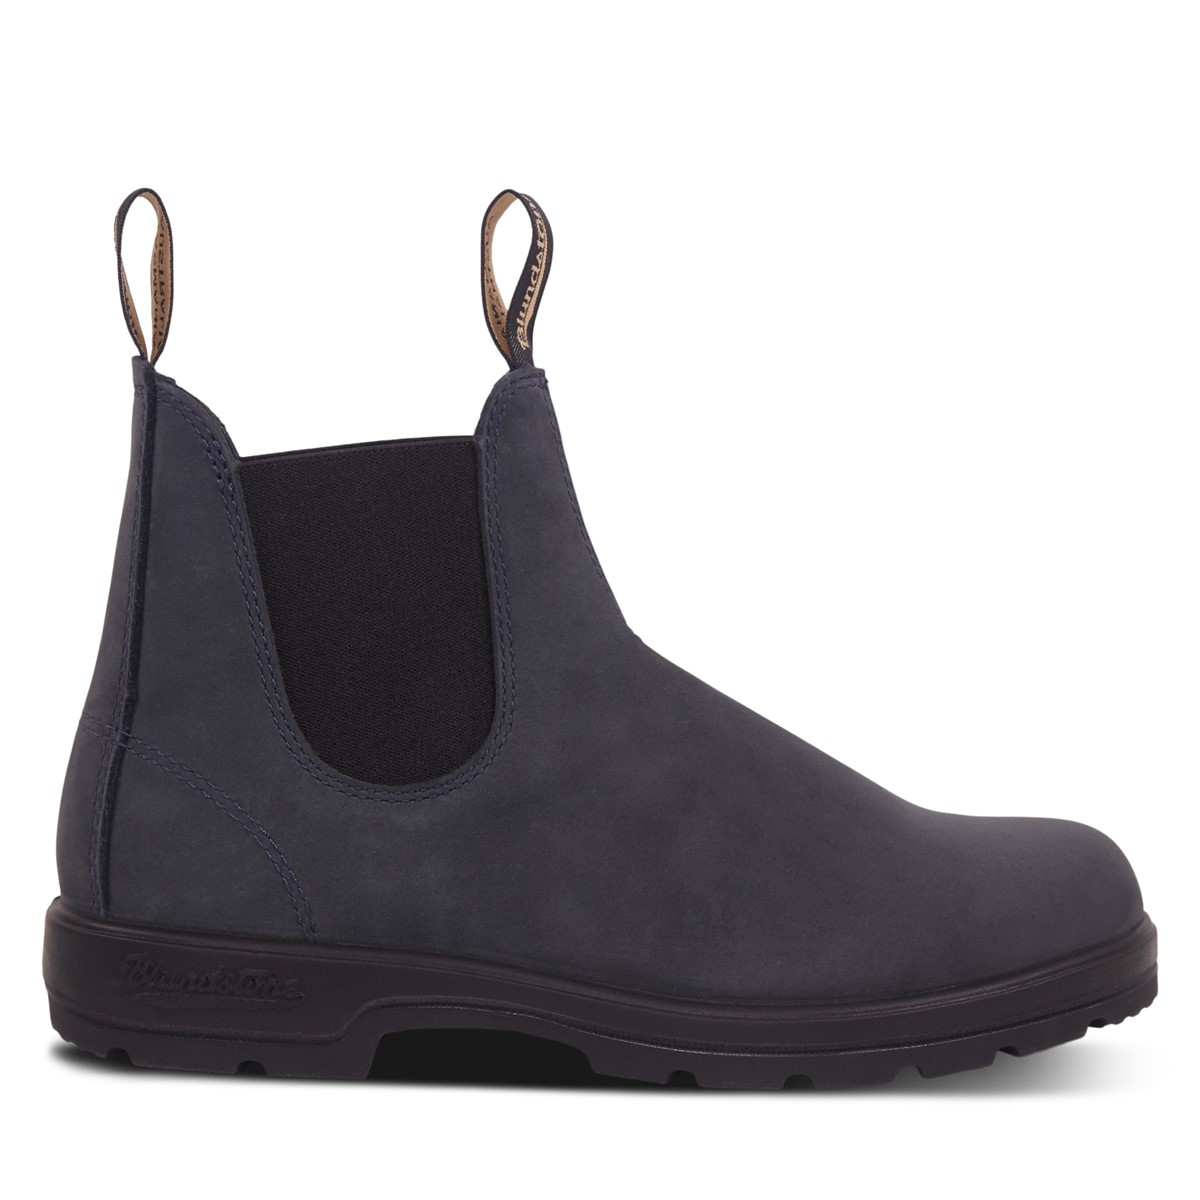 1604 Classic Chelsea Boots in Blueberry